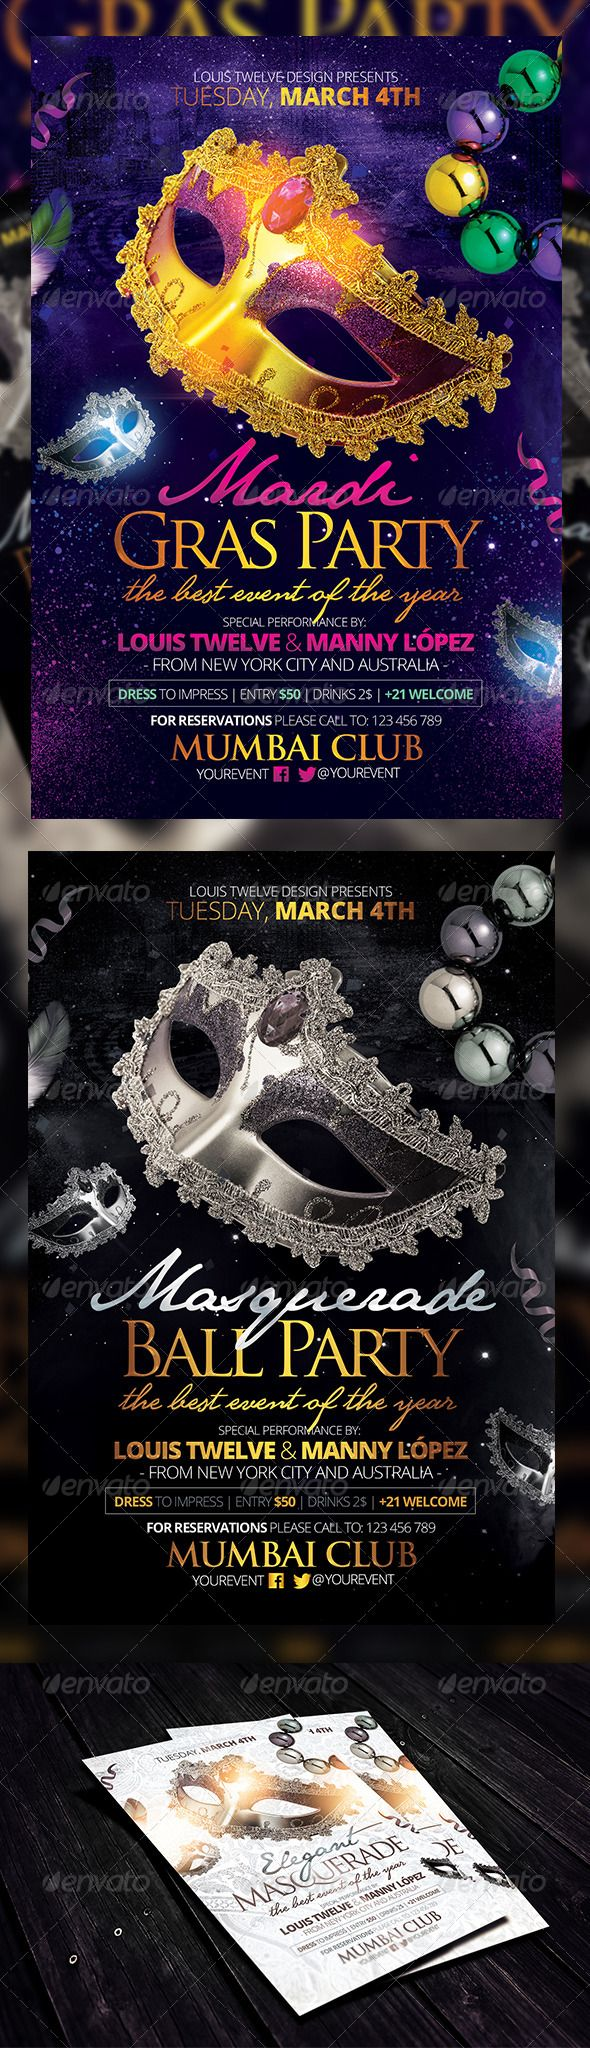 Masquerade Ball  Mardi Gras Party Flyers Template  Party Flyer